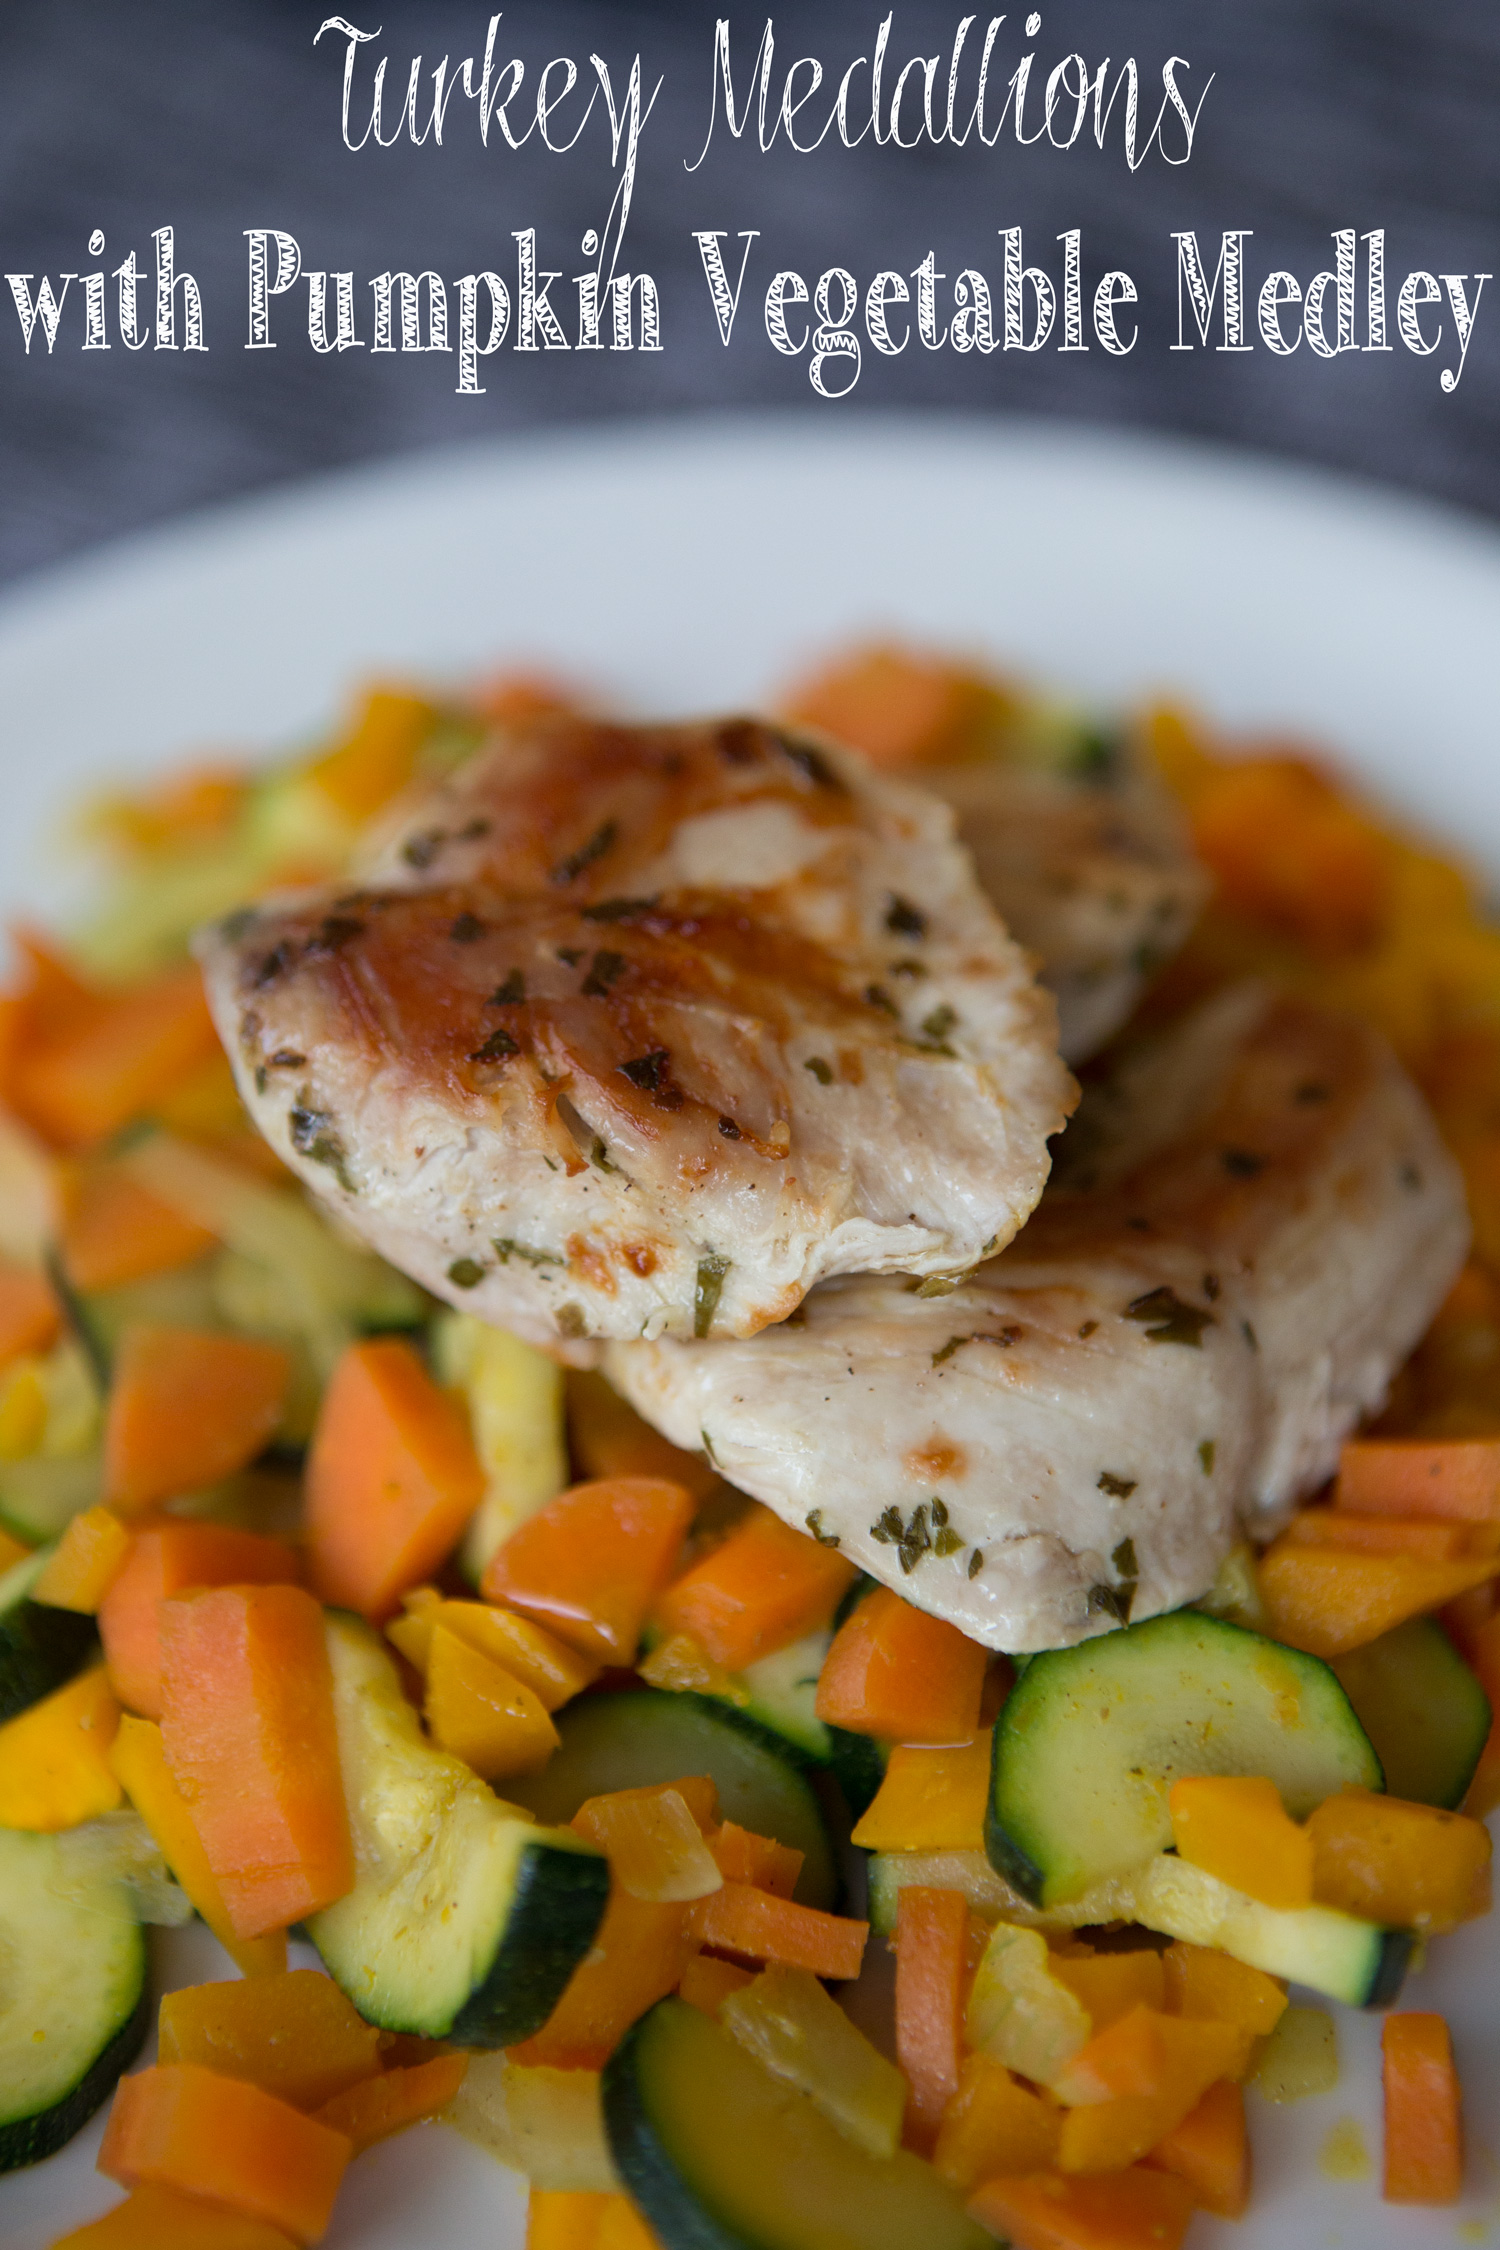 Pin it! Turkey medallions with vegetable medley